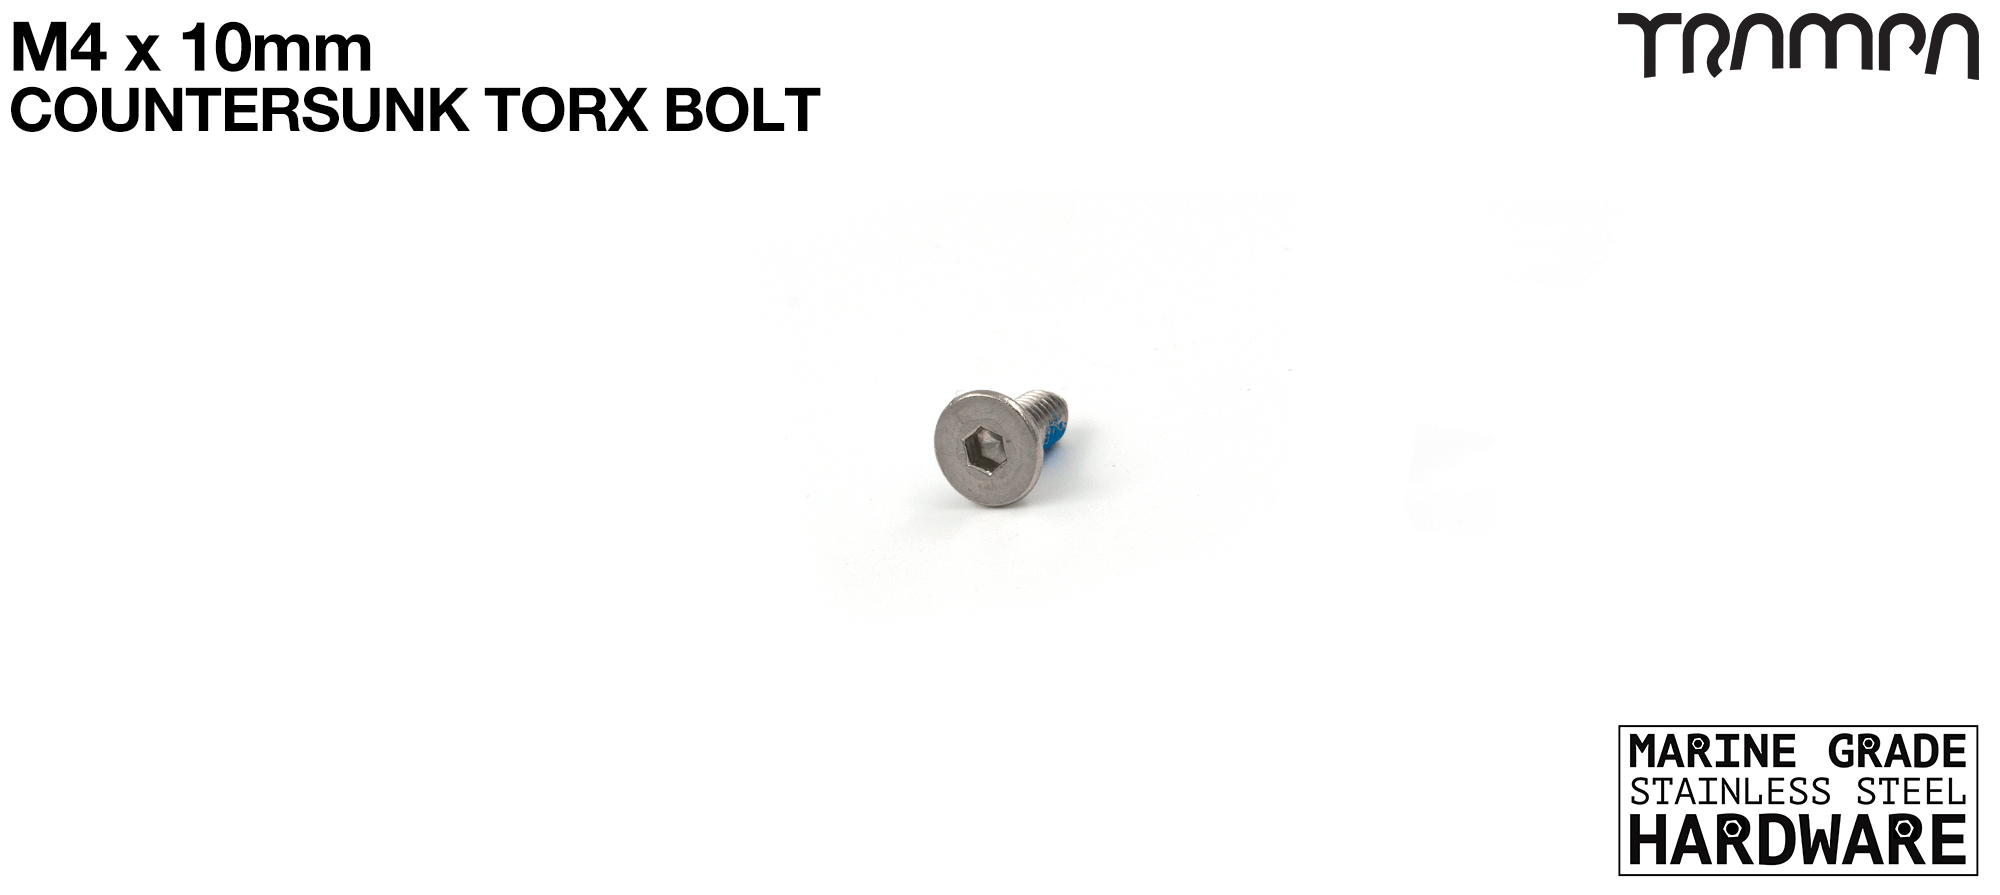 M4 x 10mm Countersunk Head Bolt Marine Grade Stainless Steel